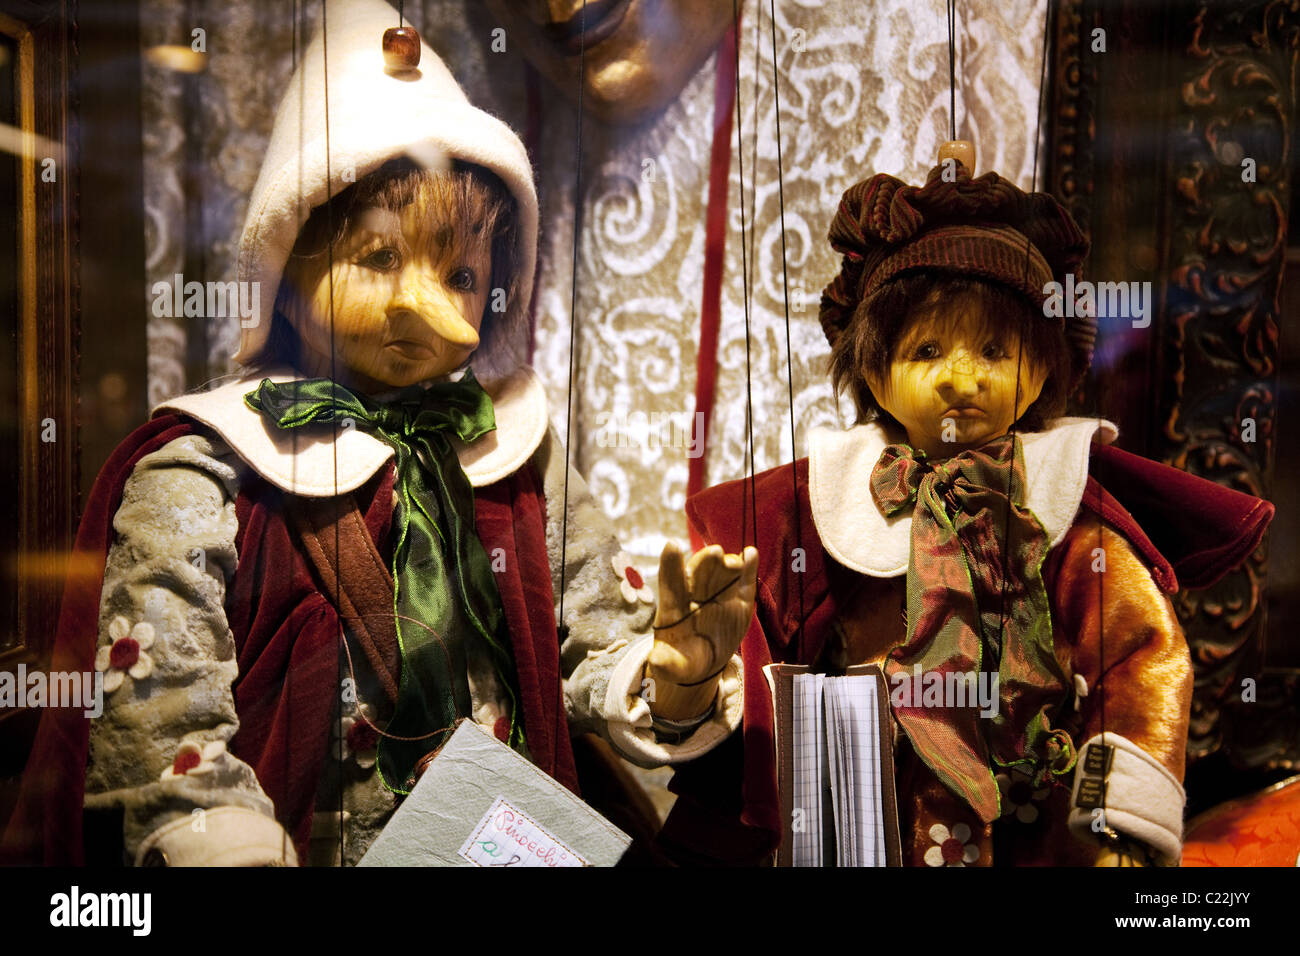 Wooden Pinocchio puppets for sale in a shop window, Venice Italy - Stock Image